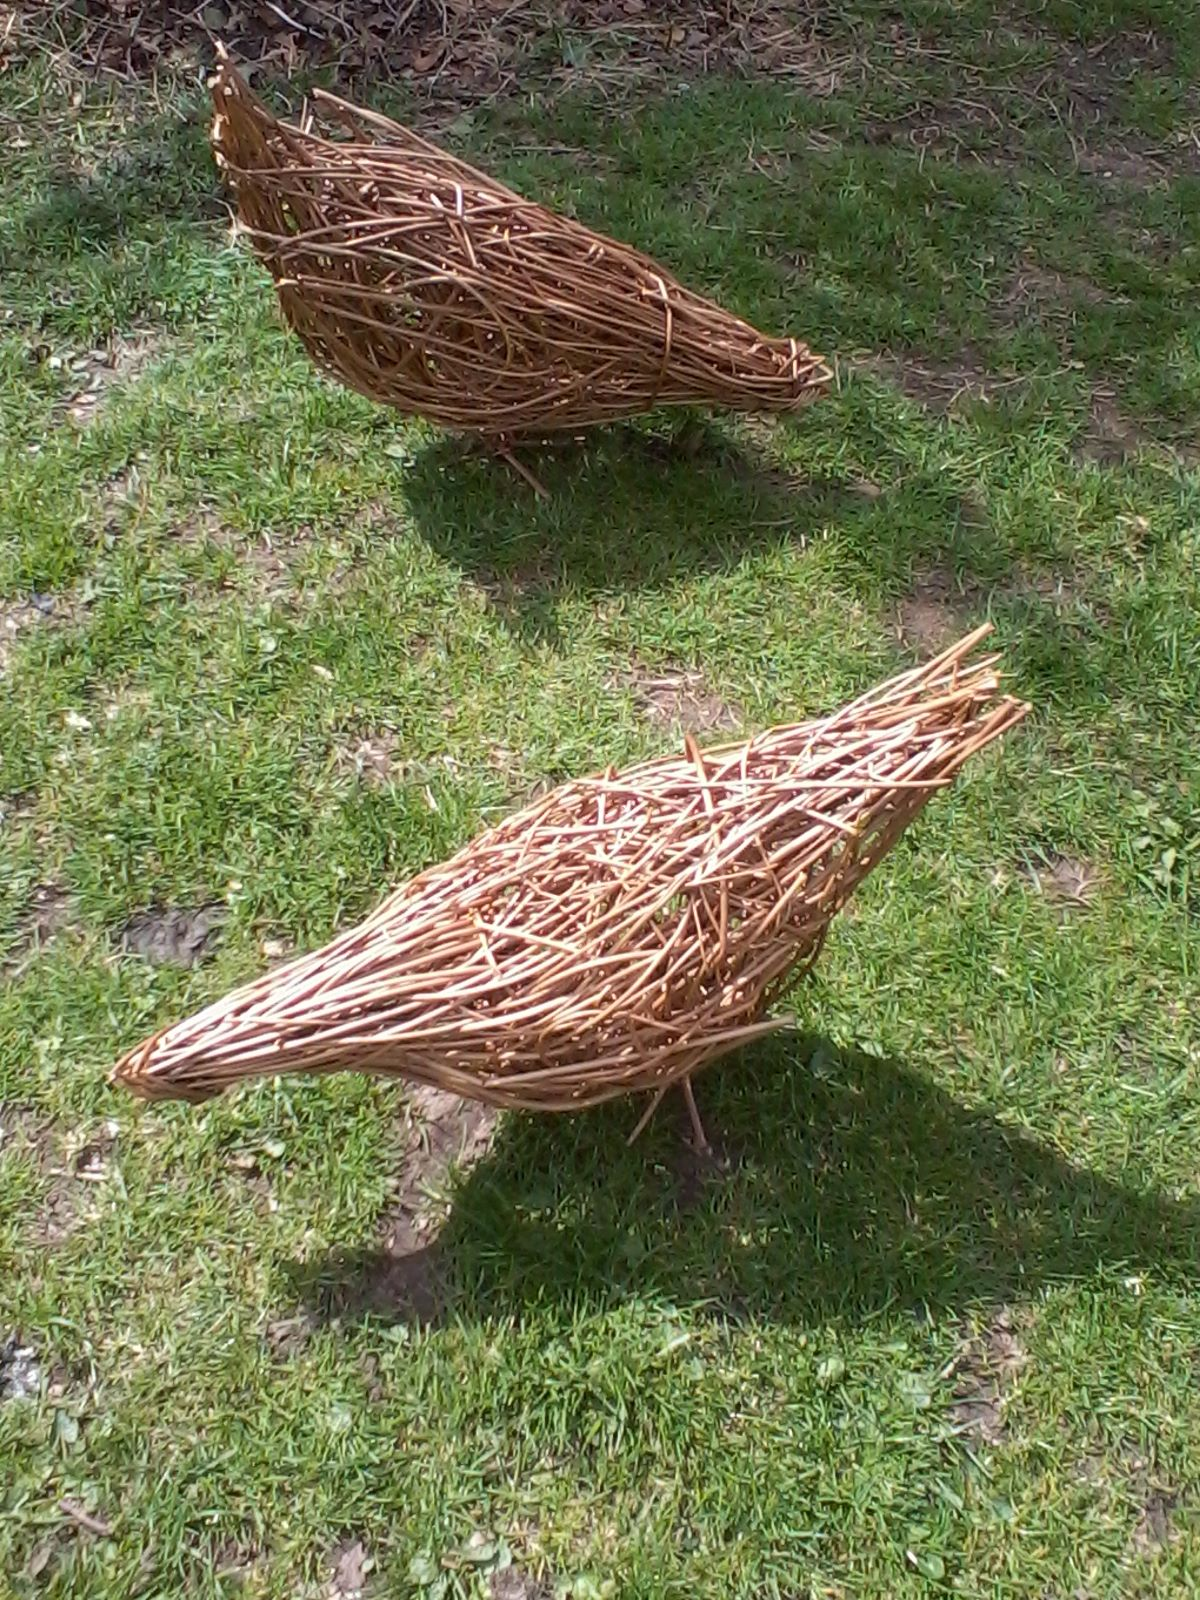 WILLOW Wicker CHICKENS